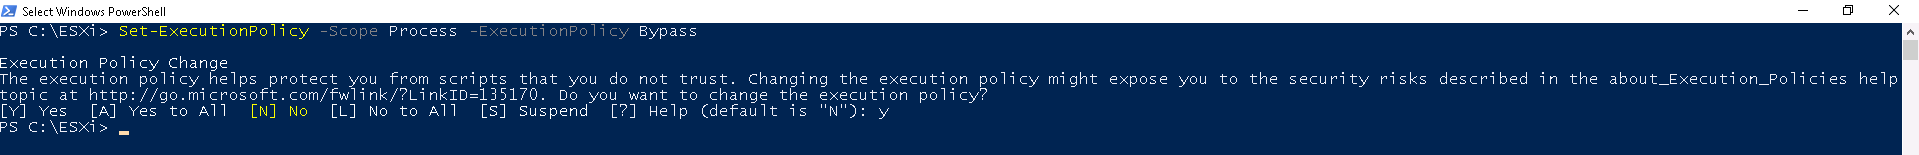 Set-ExecutionPolicy -Scope Process -ExecutionPolicy Bypass